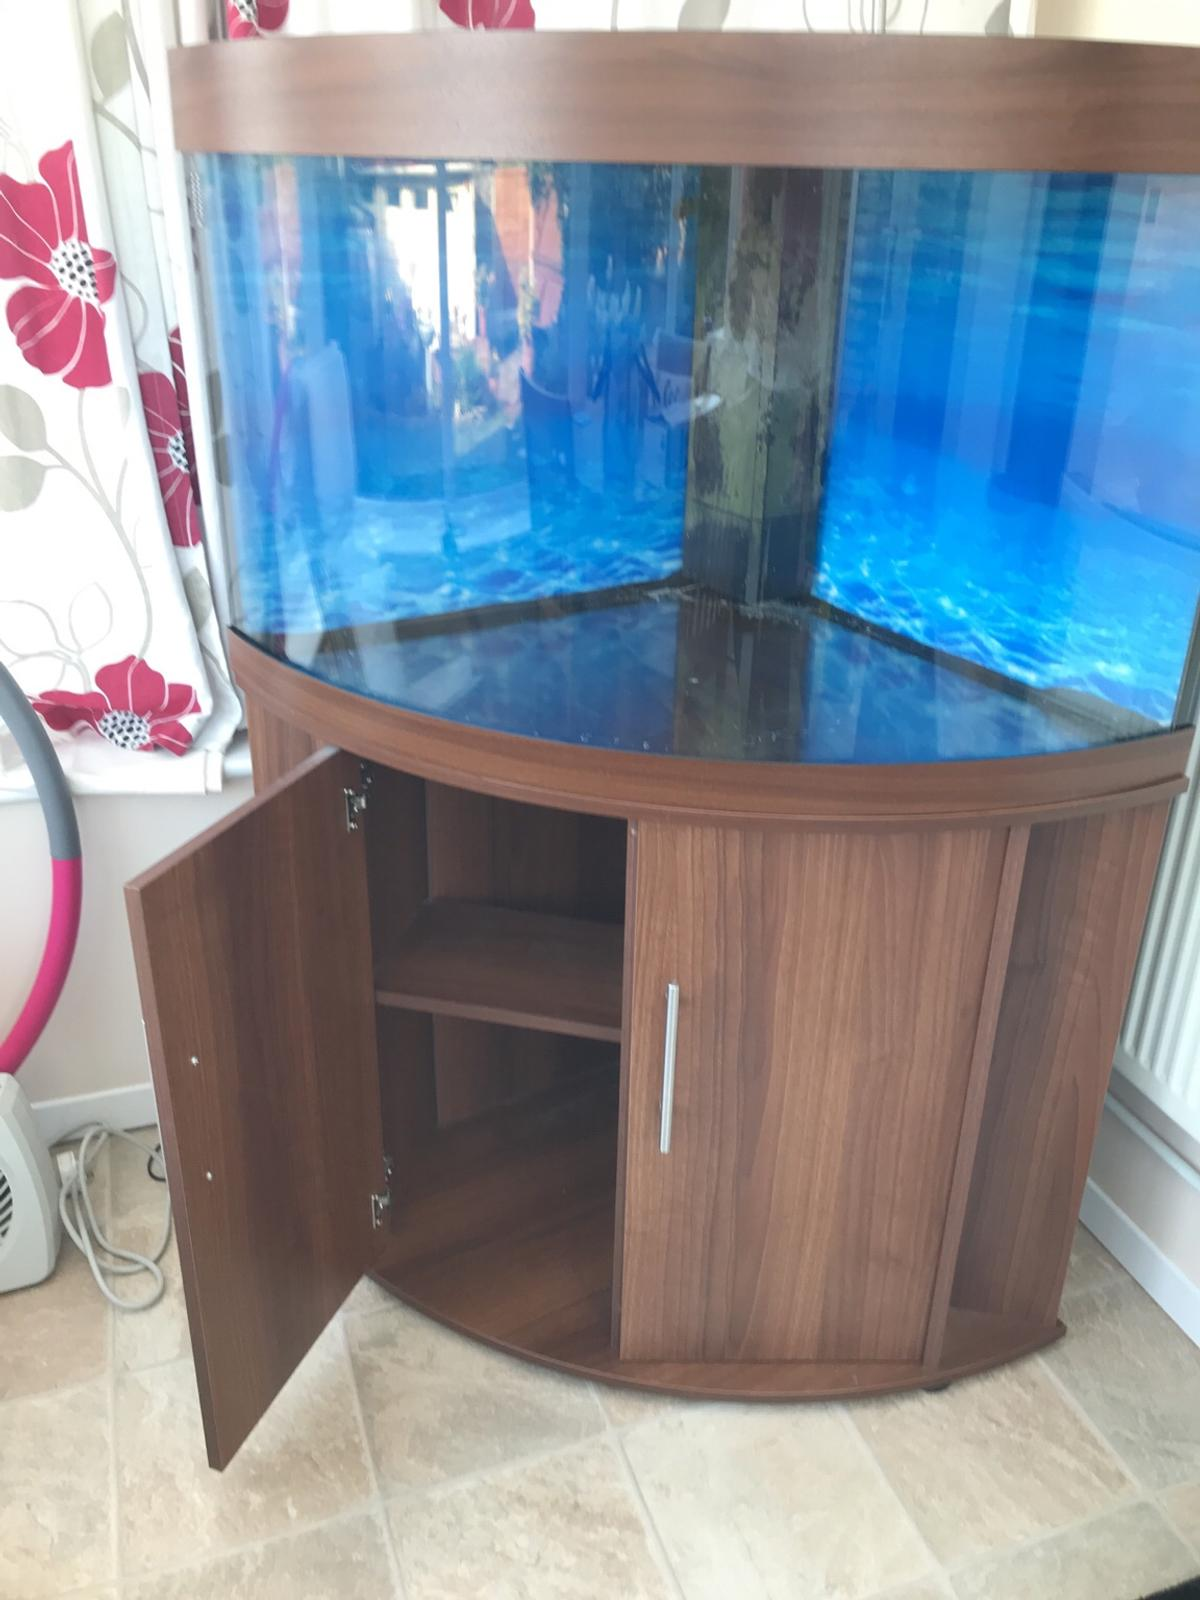 Jewel Trigon 190 Aquarium And Cabinet